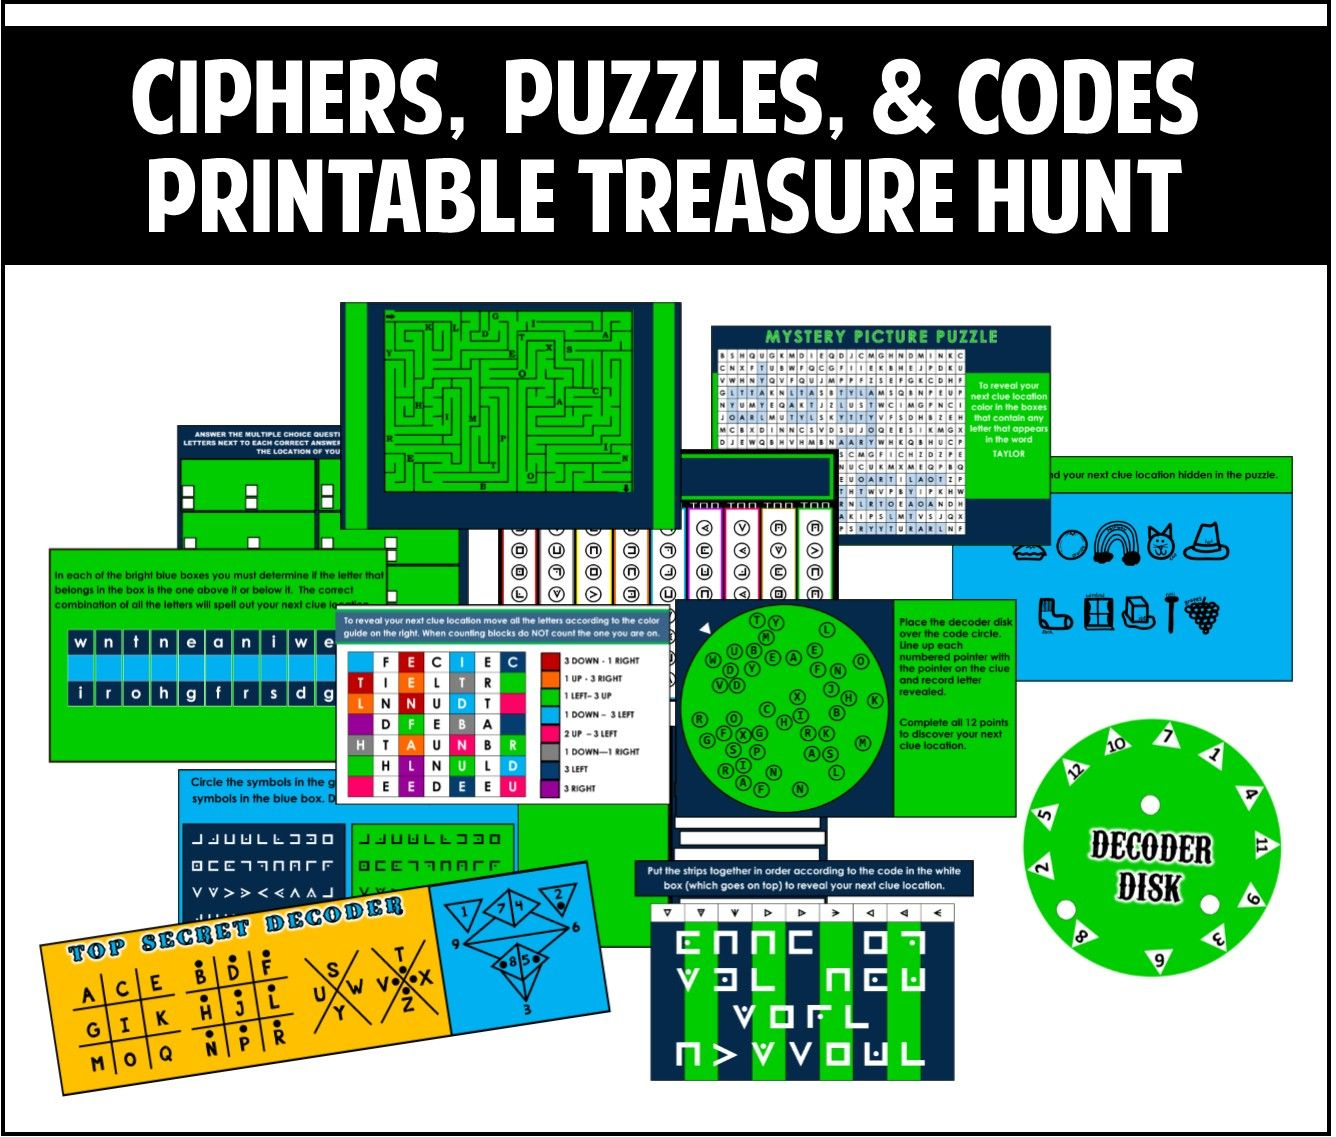 This Printable Treasure Hunt Is All About Ciphers, Puzzles, And - Printable Escape Room Puzzle